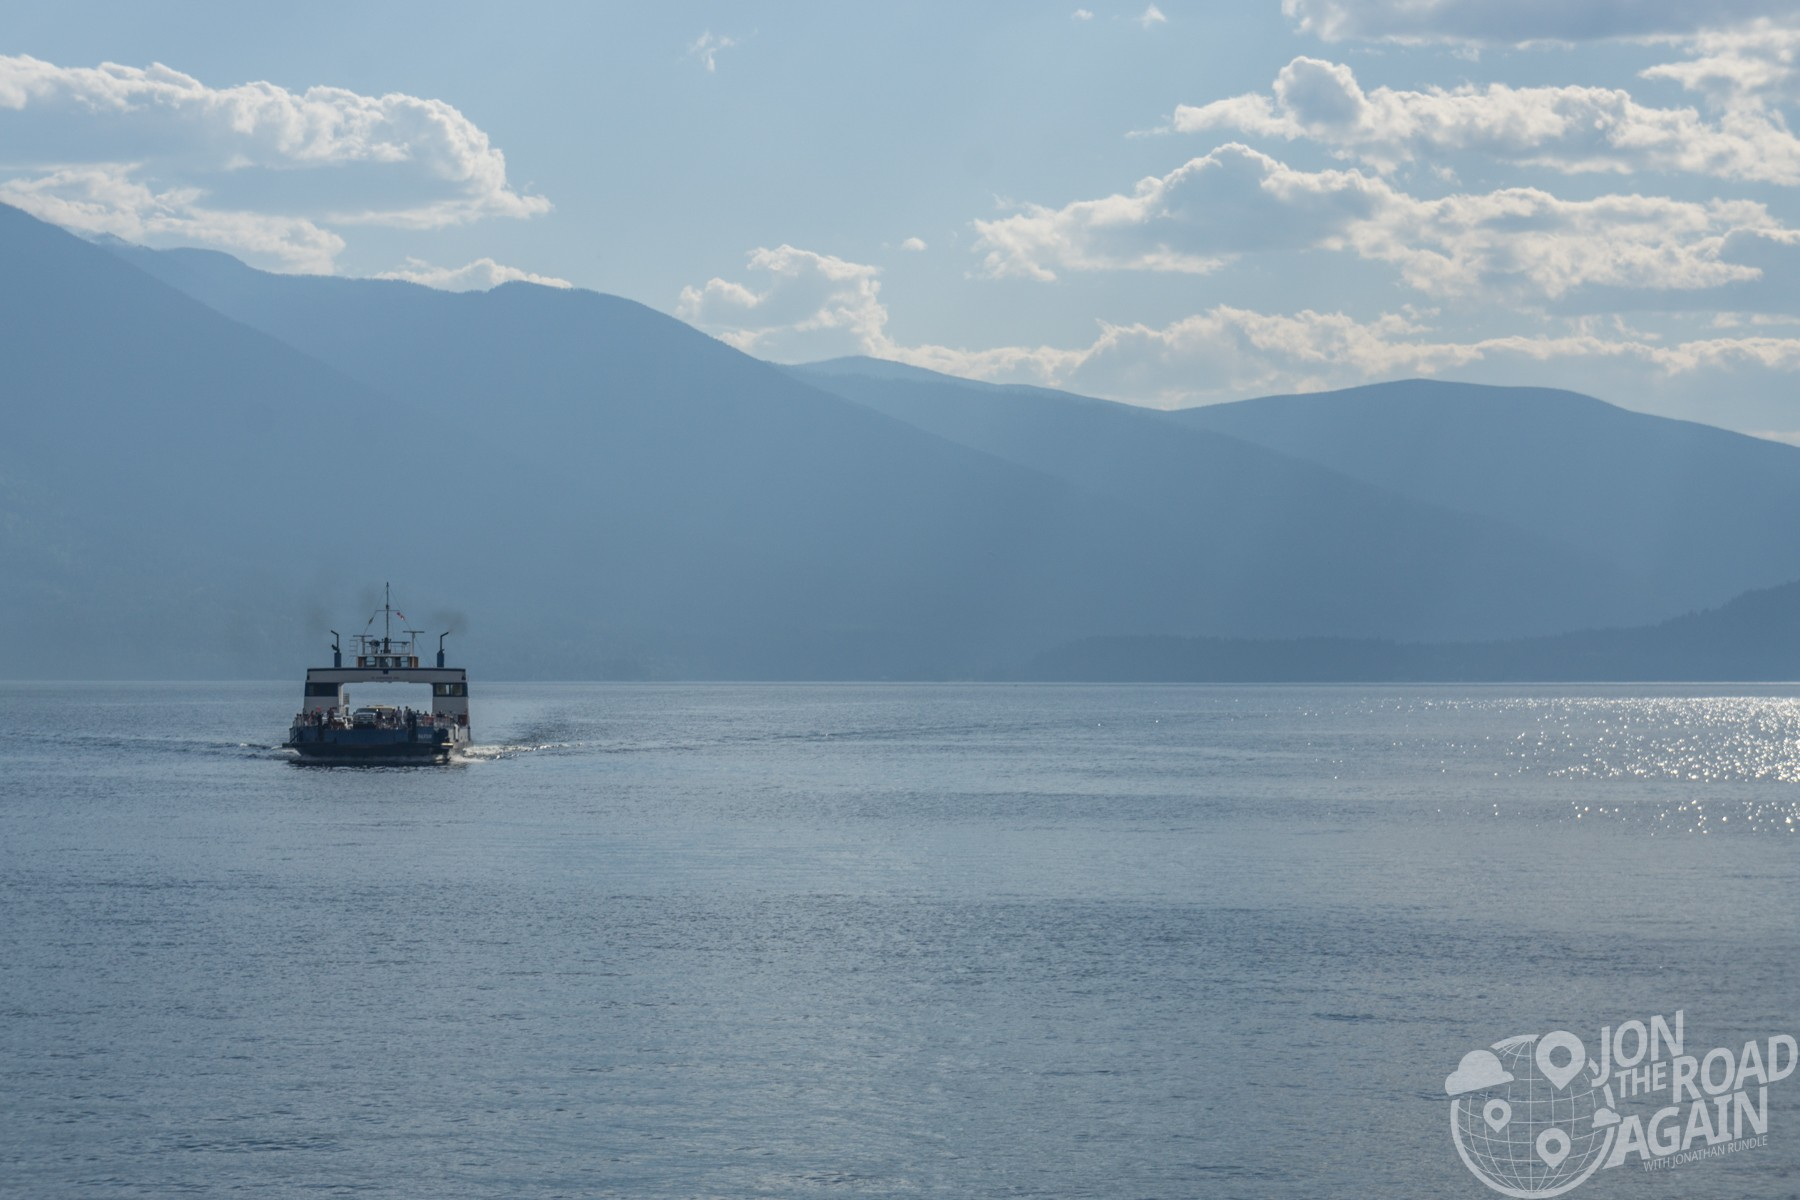 Kootenay Bay / Kootenay Lake Ferry to Balfour